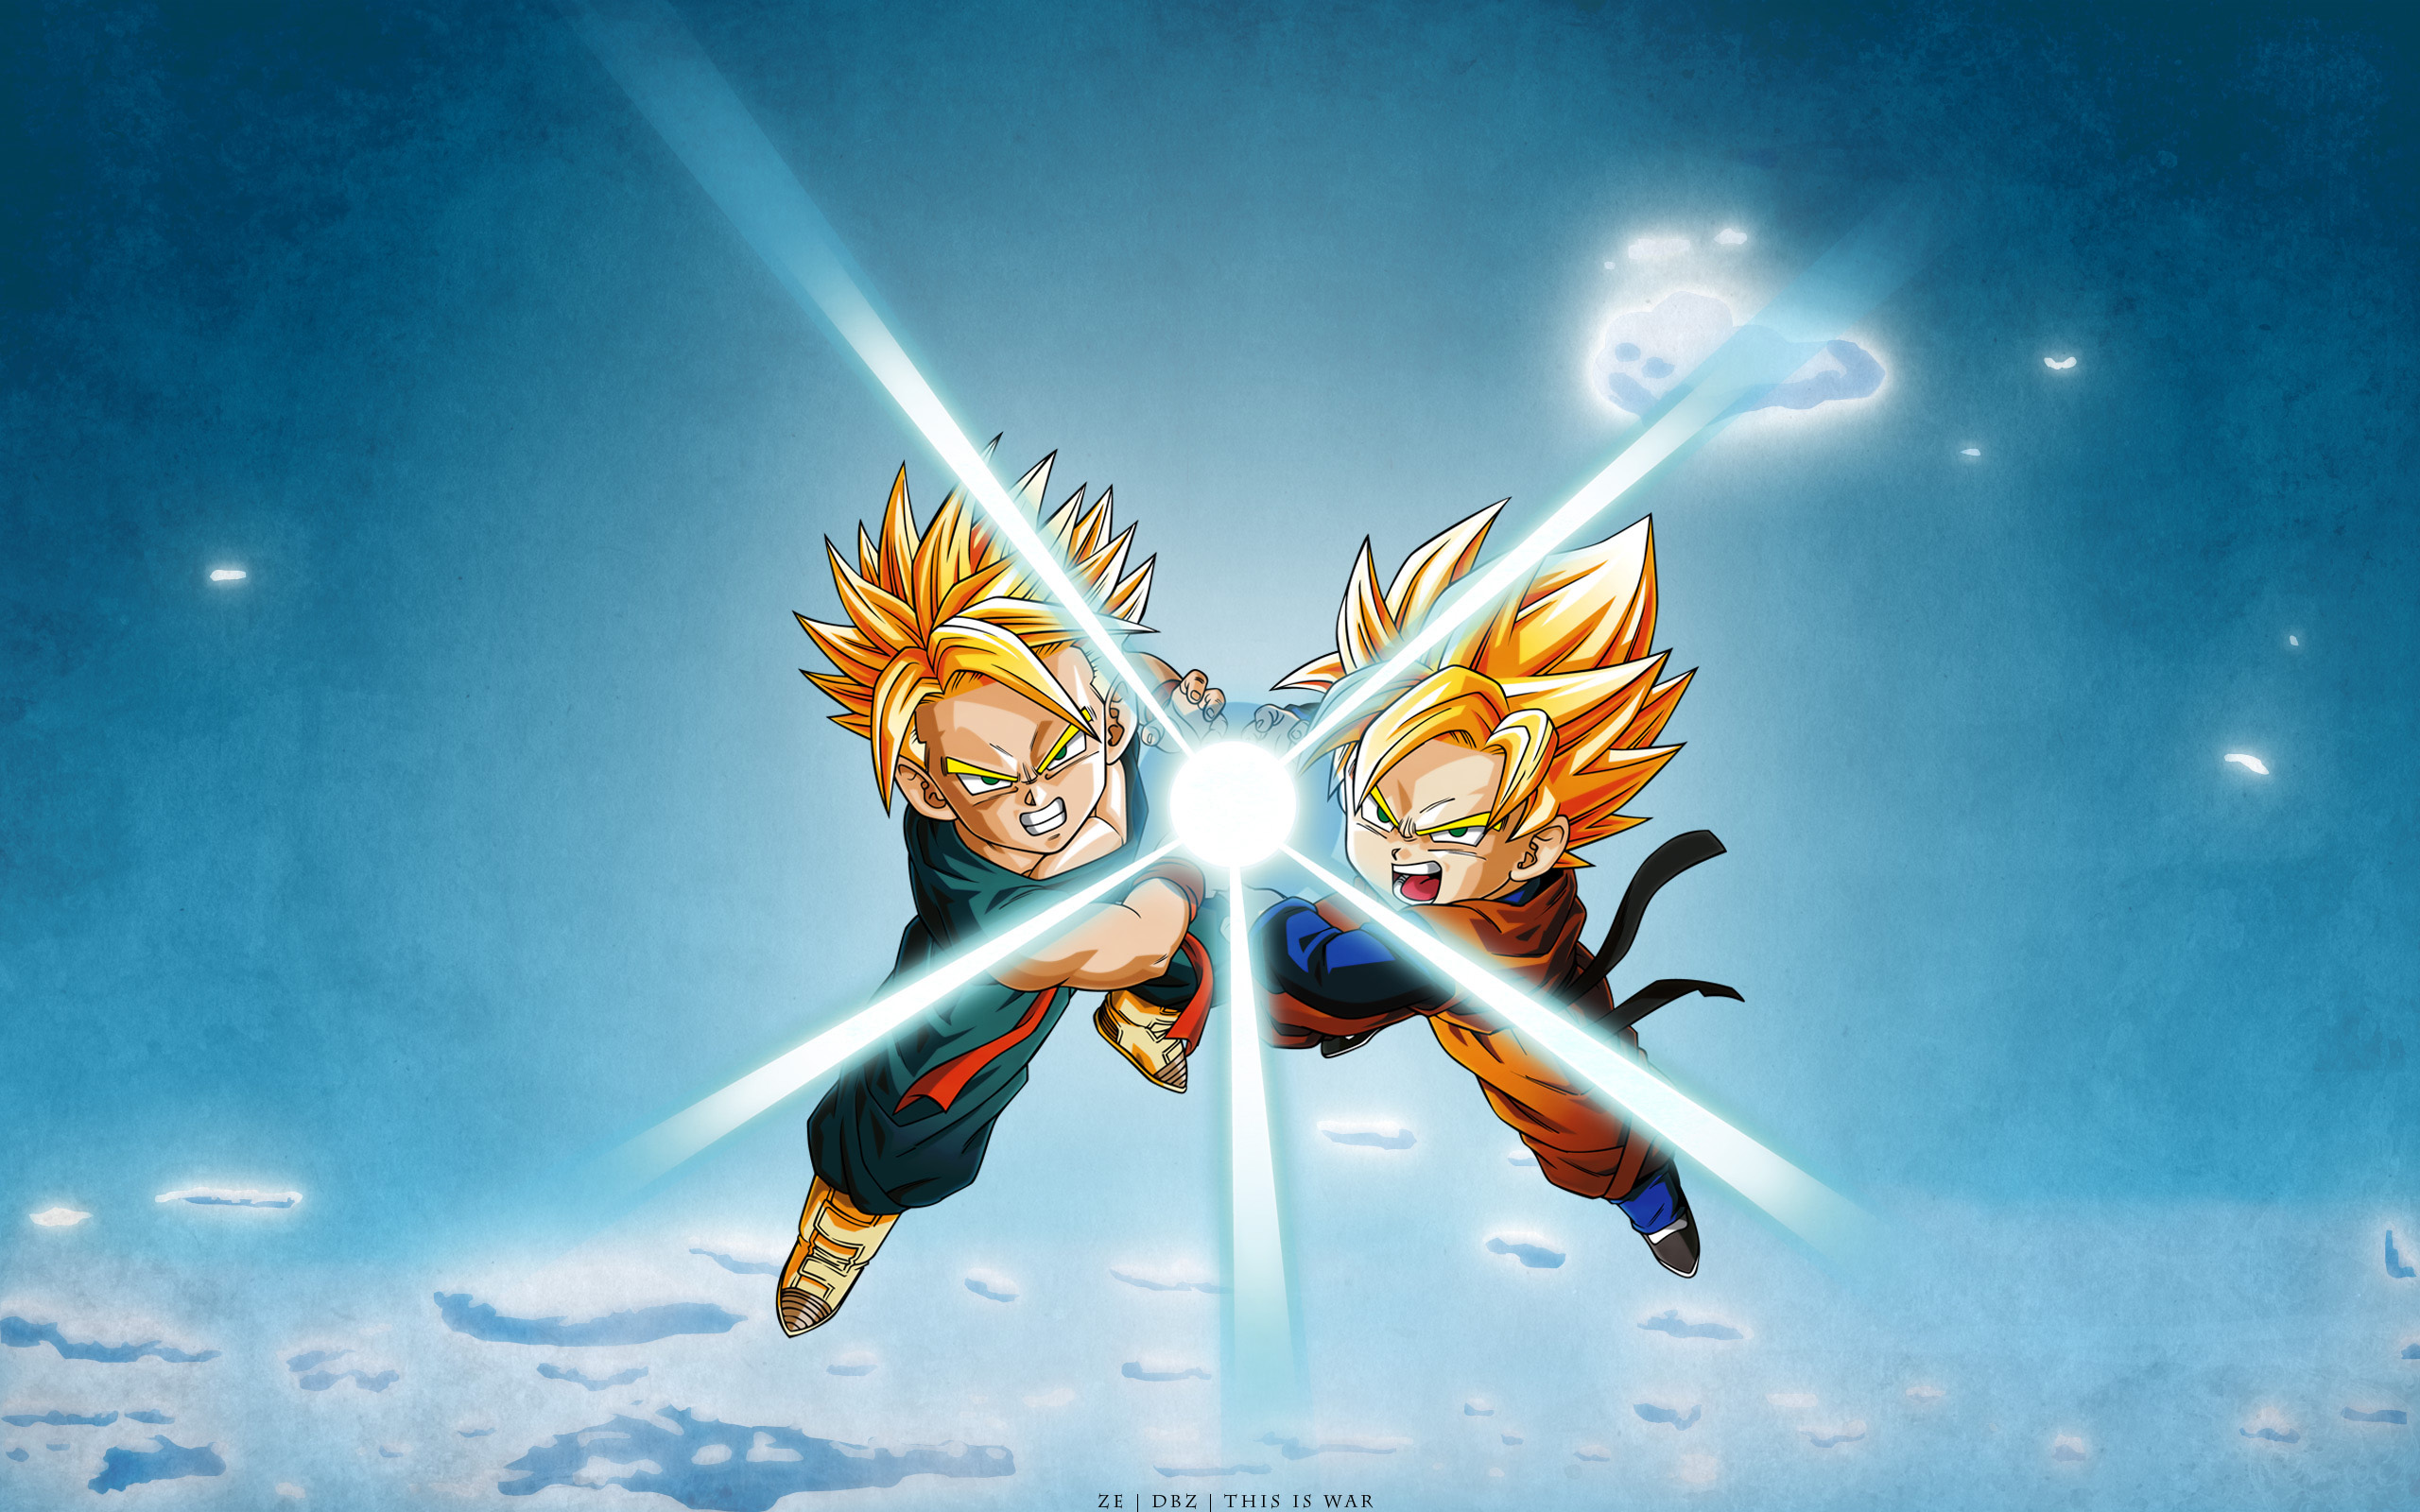 of Dragon Ball Z Hd Wallpapers For Pc for Computer backgrounds 2560x1600